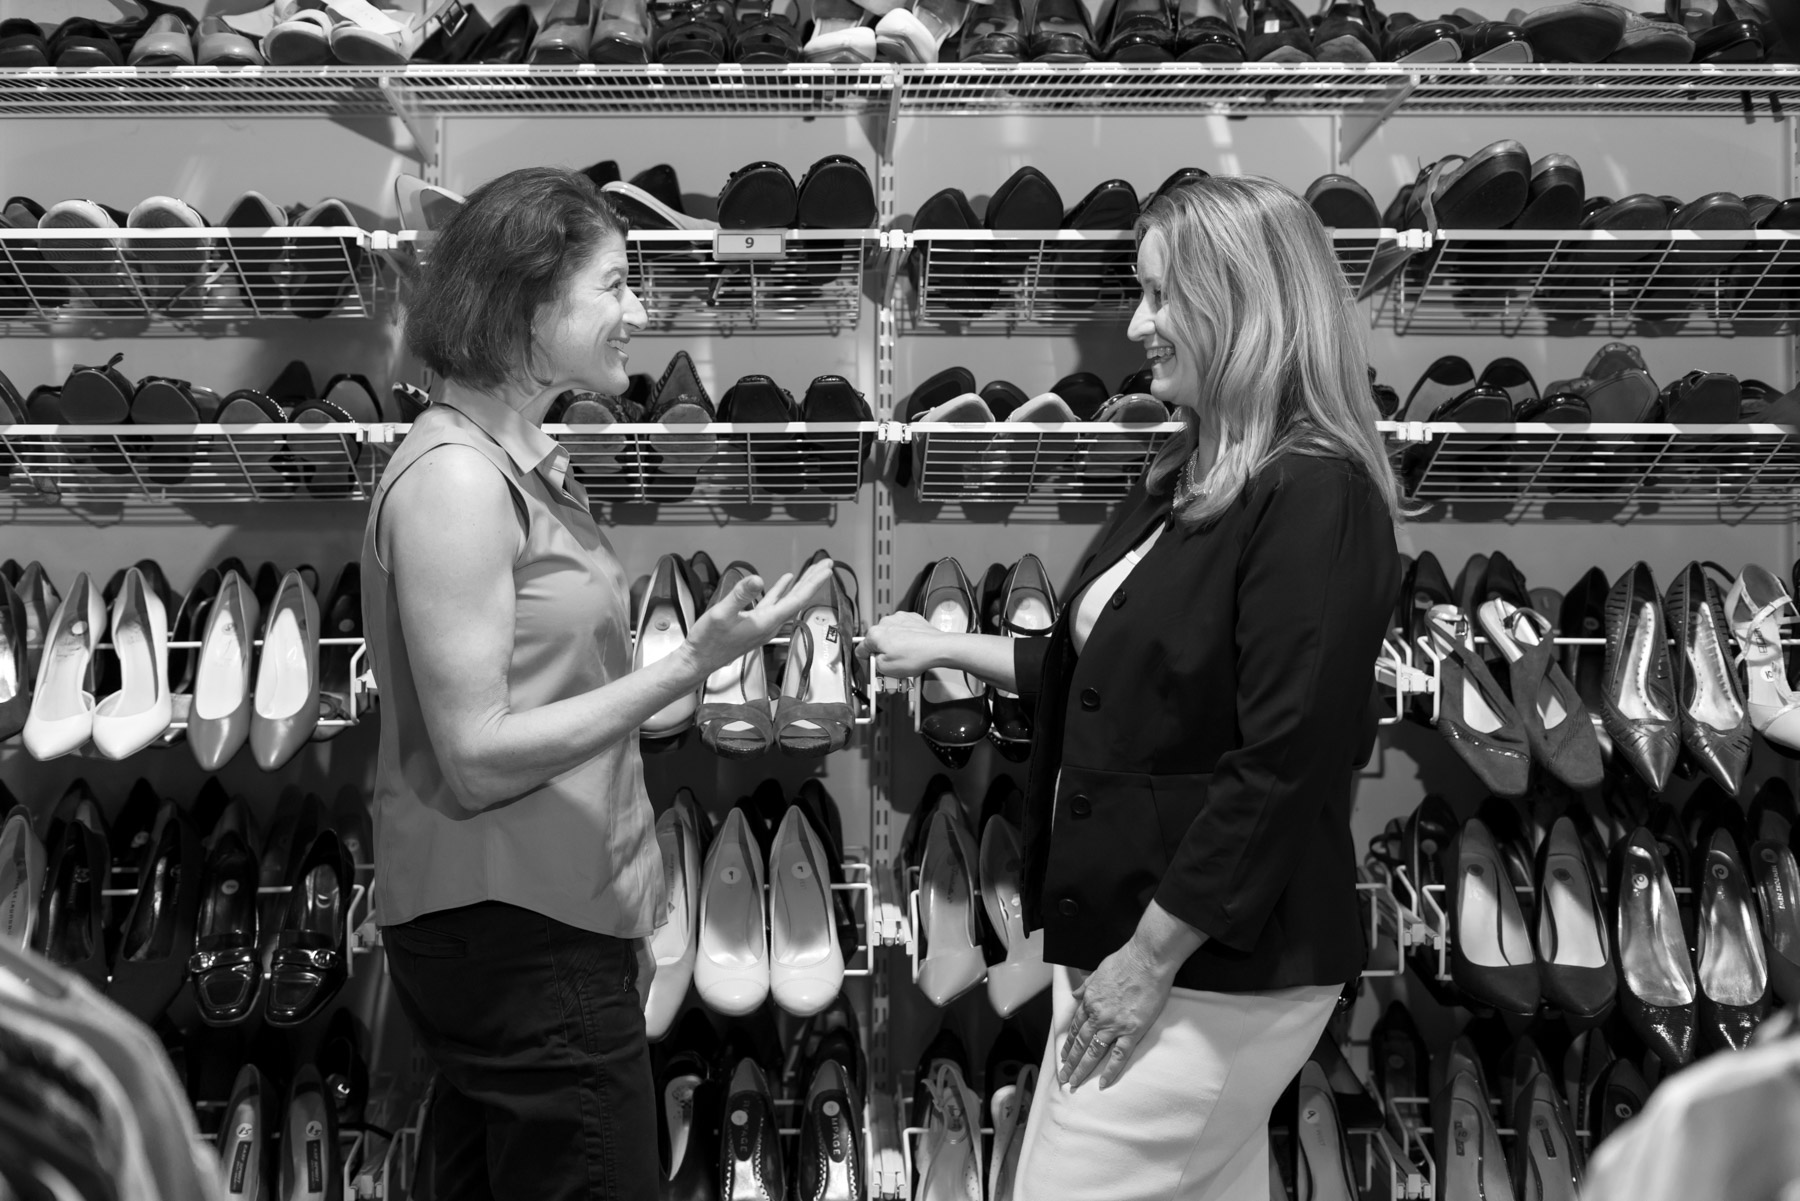 """Along with the foundations, grants, and businesses in town who support Dress For Success, they also have an impressive 300 volunteer staff that serve as the backbone of the organization. """"We are so lucky, we have so many different people in the community who want to help us. Obviously, just a portion of those are coming in to help but there are so many others who are mentoring clients offsite. We have life coaches, speakers who come in, and different women's groups who will perform donation drives or have clients at their place of business for interview practice… It's just a huge, huge volunteer workforce. And they're the ones who actually do the one-on-one work with the clients. So we obviously could not do it without the volunteers."""""""